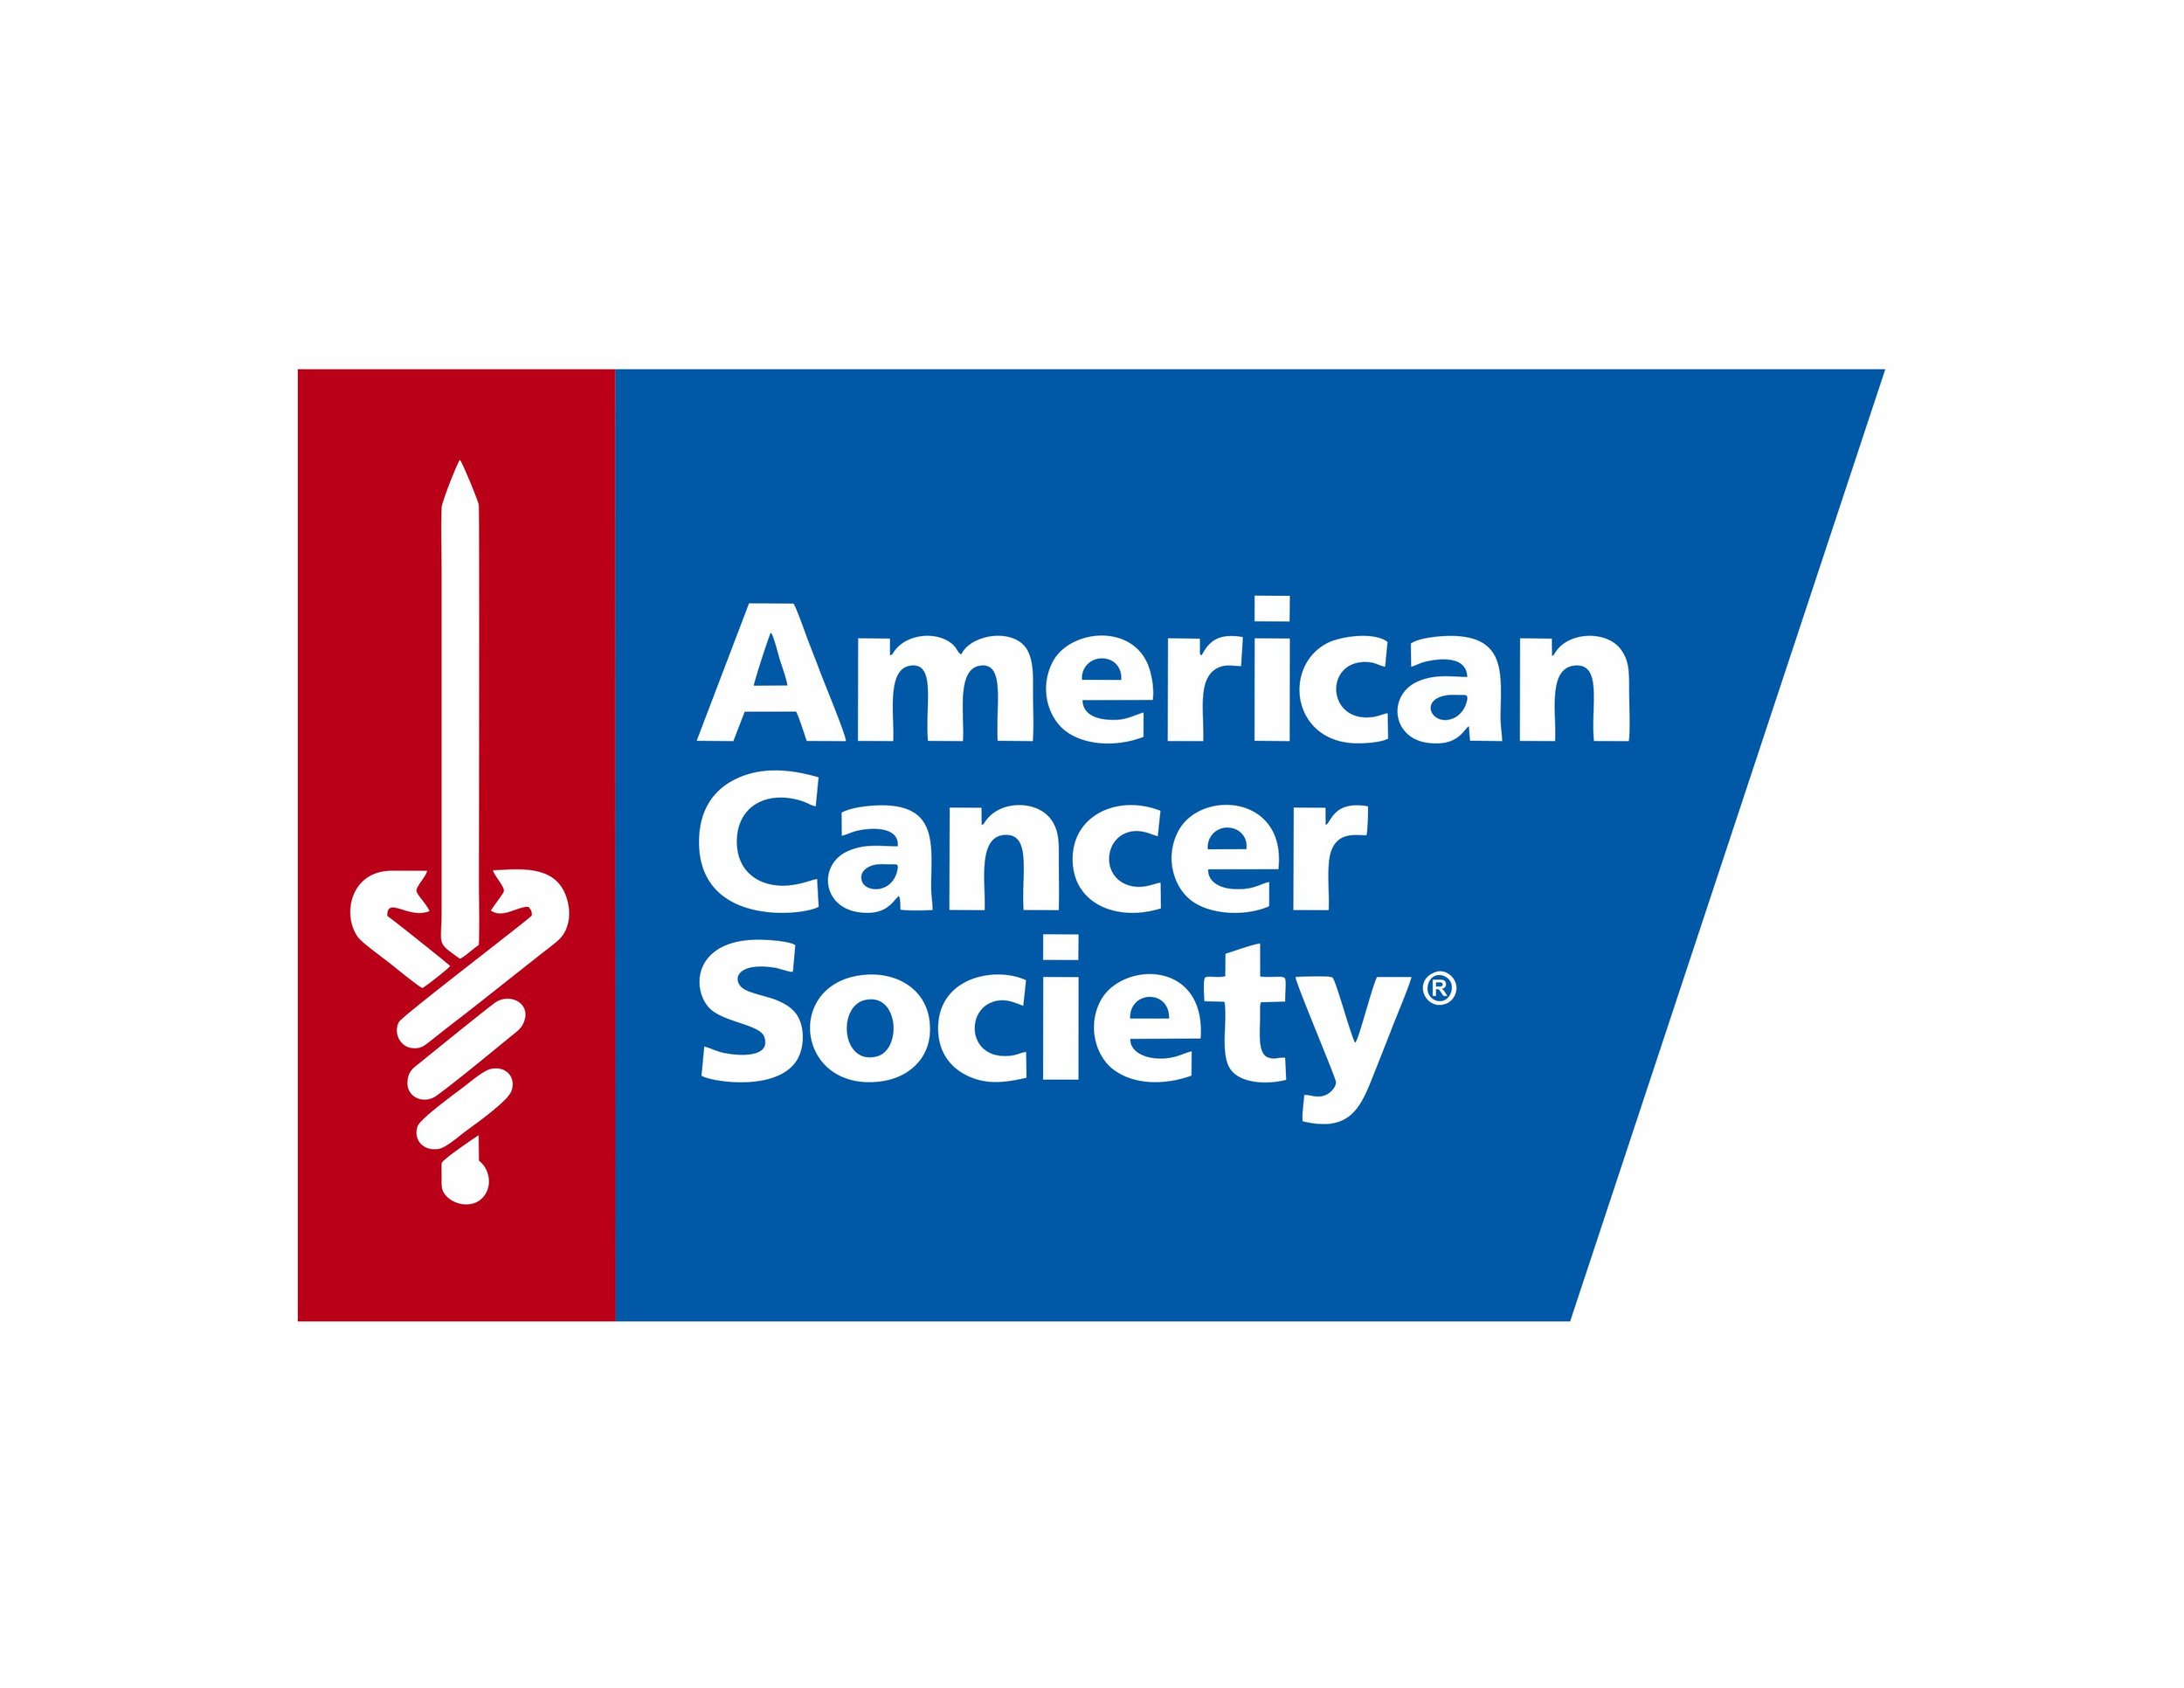 """American Cancer Society - """"At the American Cancer Society, we're on a mission to free the world from cancer. Until we do, we'll be funding and conducting research, sharing expert information, supporting patients, and spreading the word about prevention. All so you can live longer — and better.""""You can run a cause game through ADDIX to benefit the American Cancer Society. Fill out the Cause Game Contact Form to receive more information.Website: www.cancer.org"""